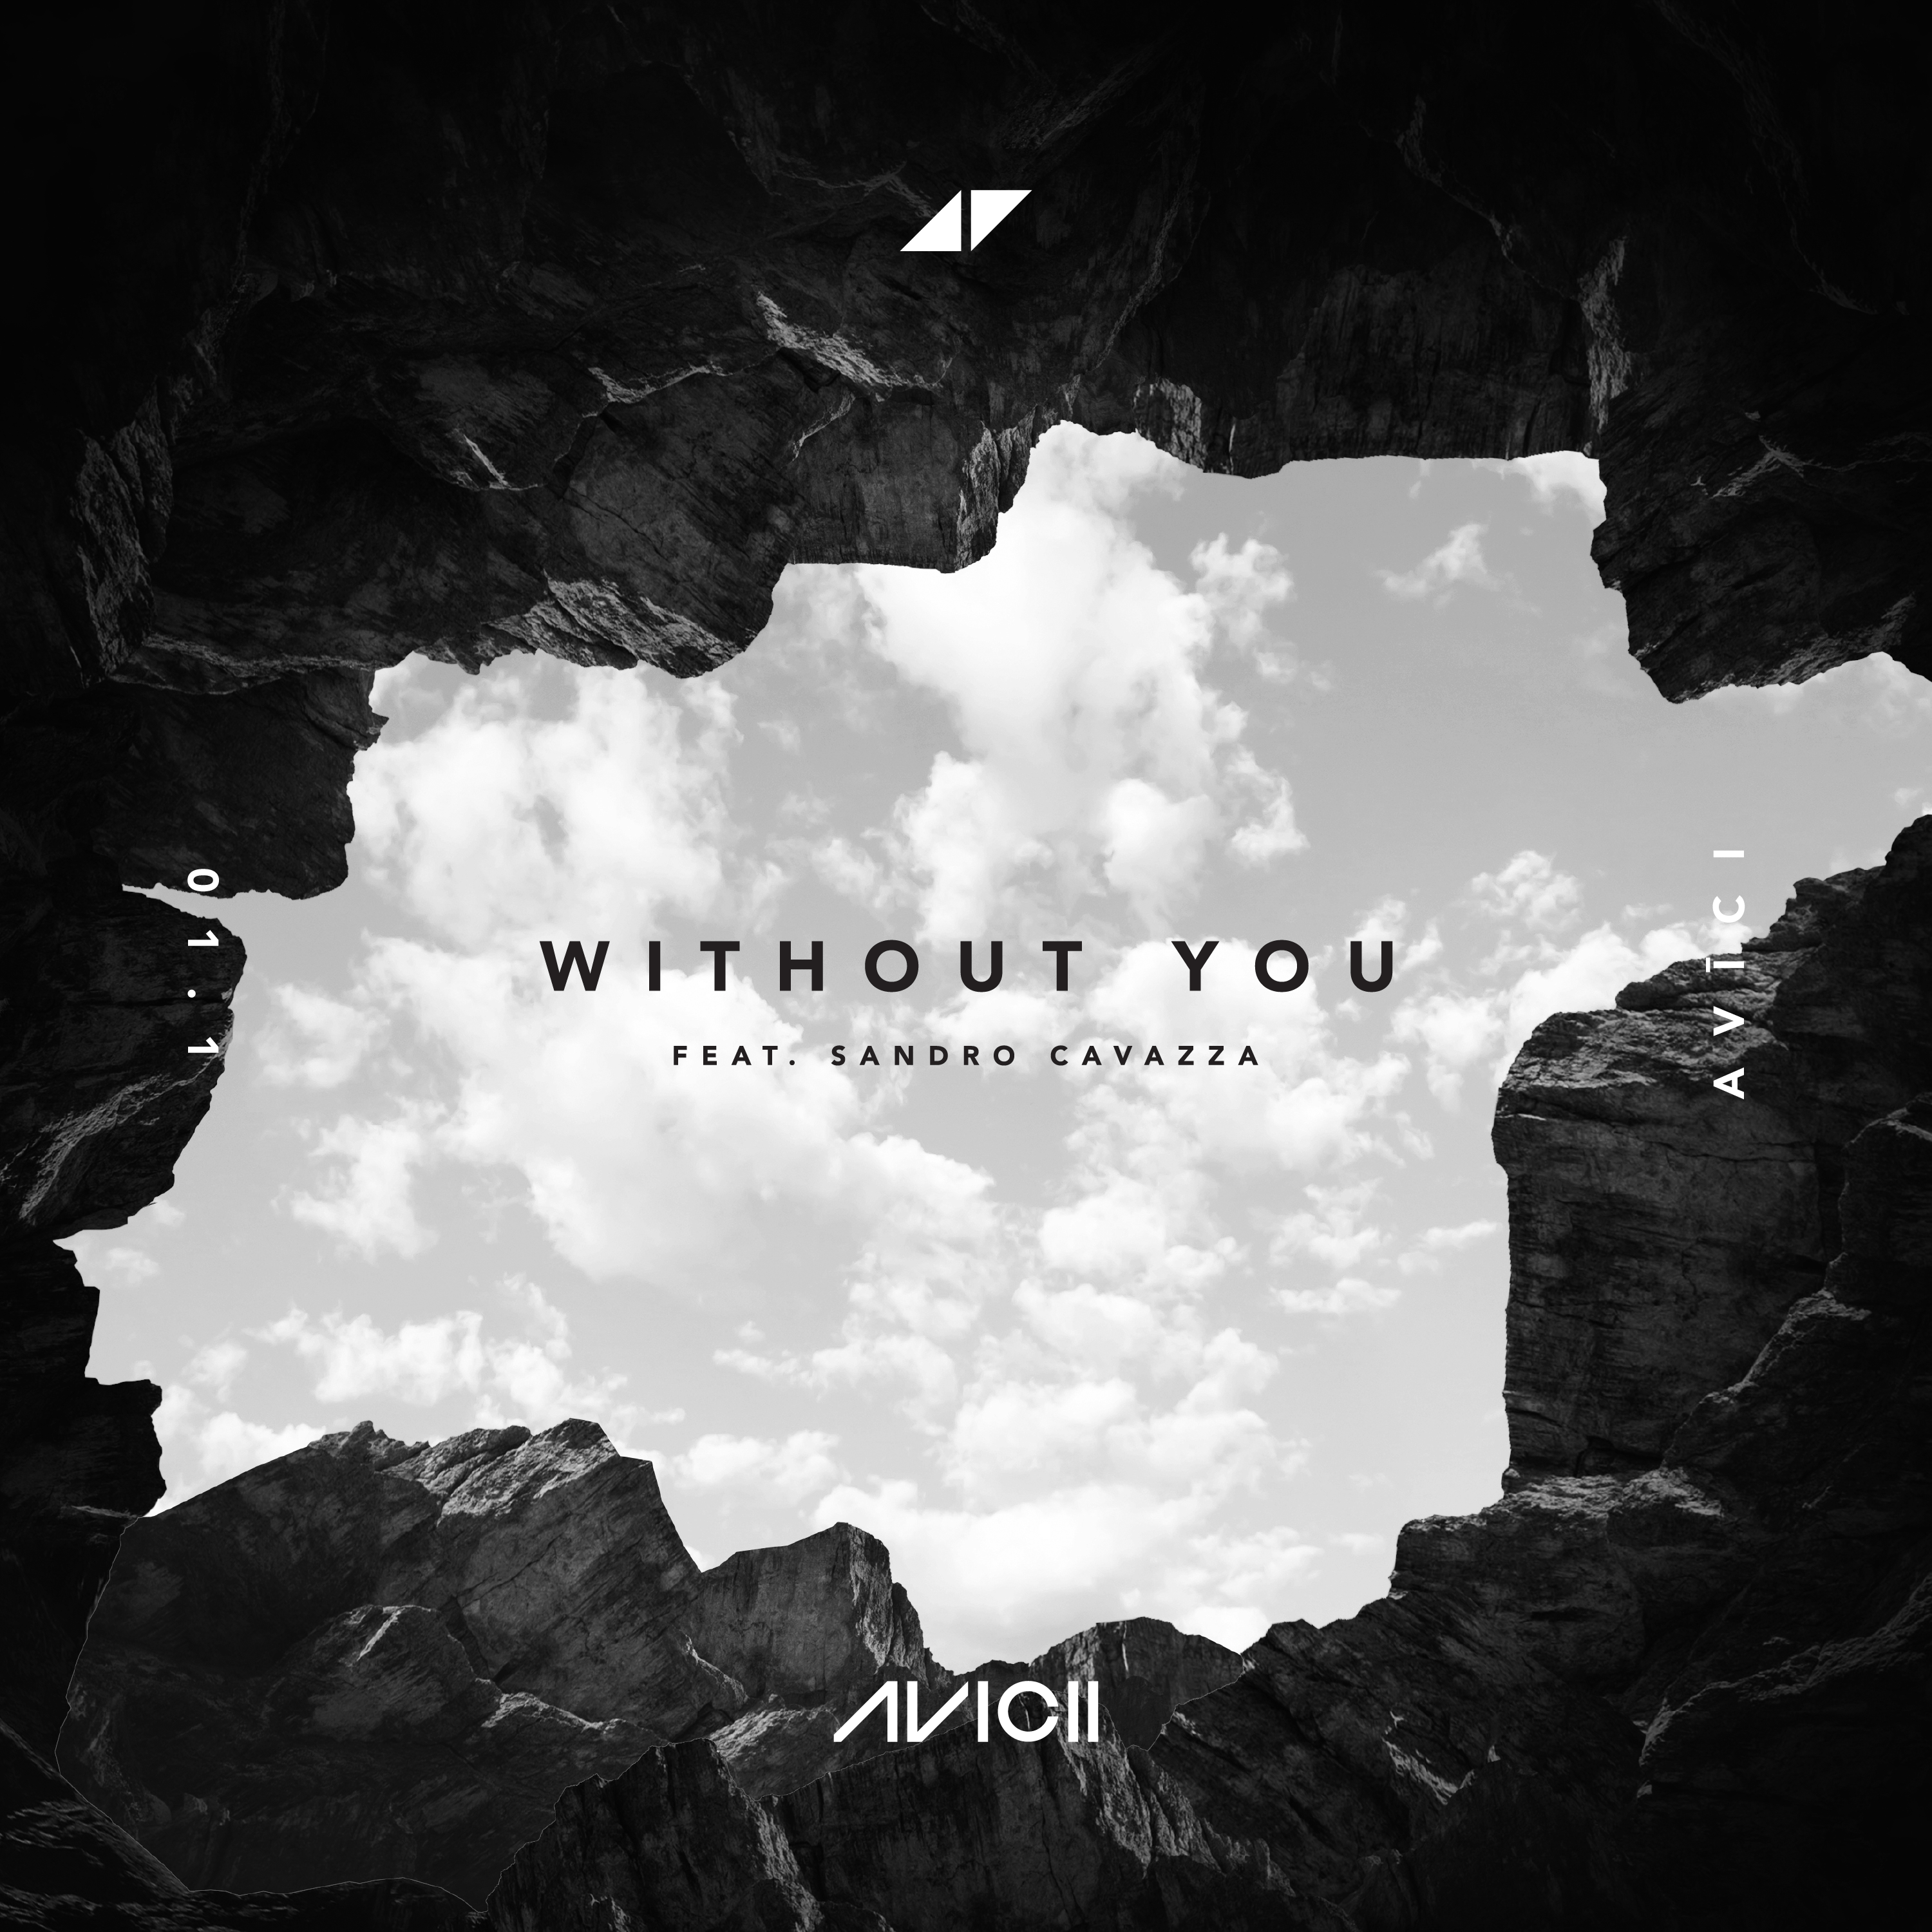 Without You - Avicii